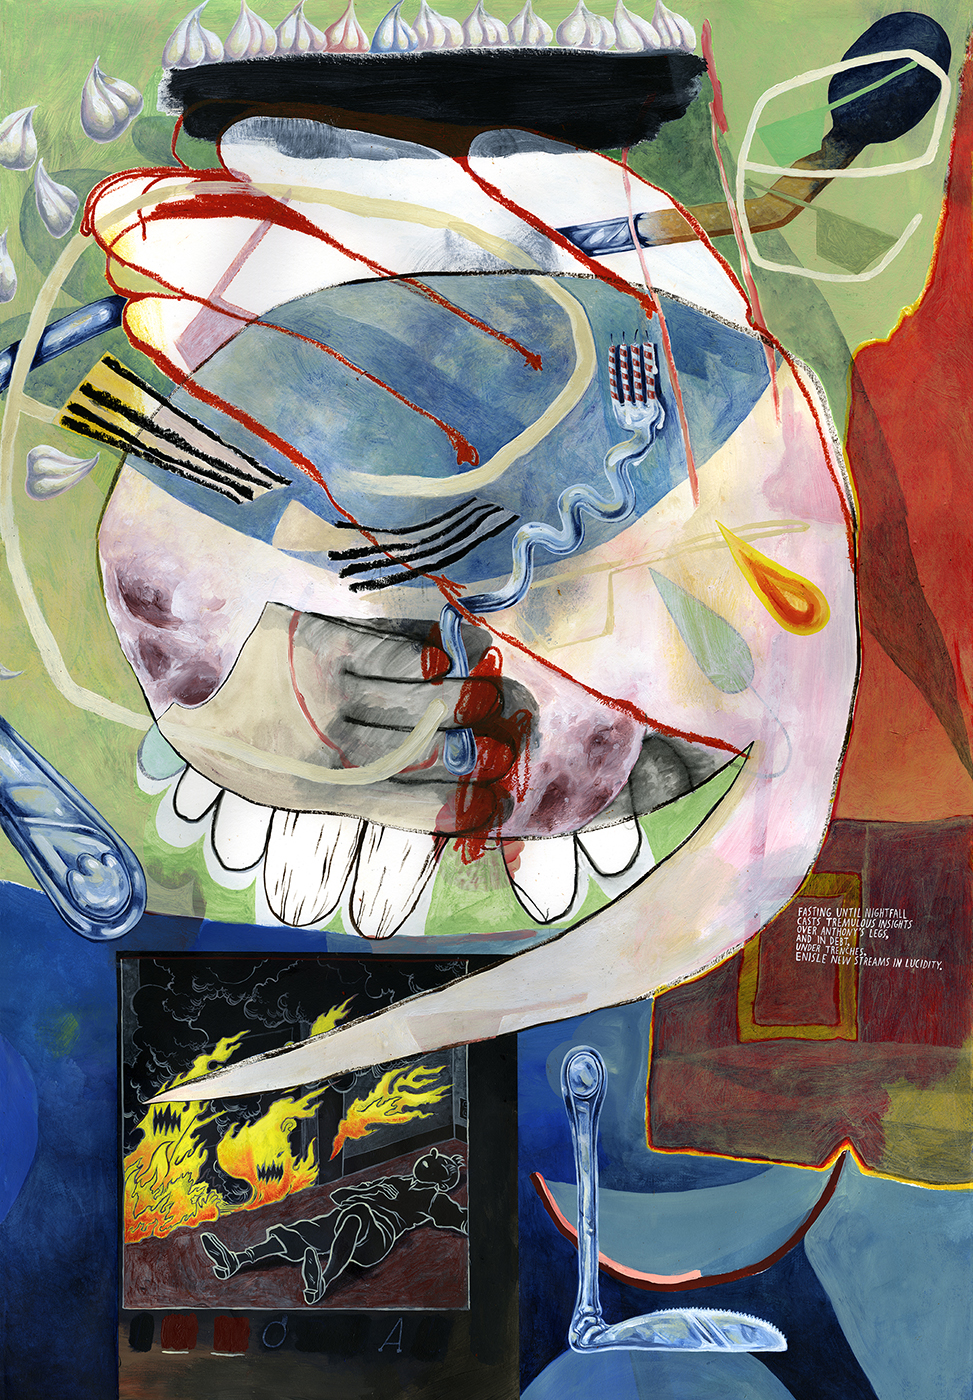 Utensil , 2016 Mixed media on paper 44 x 30 inches